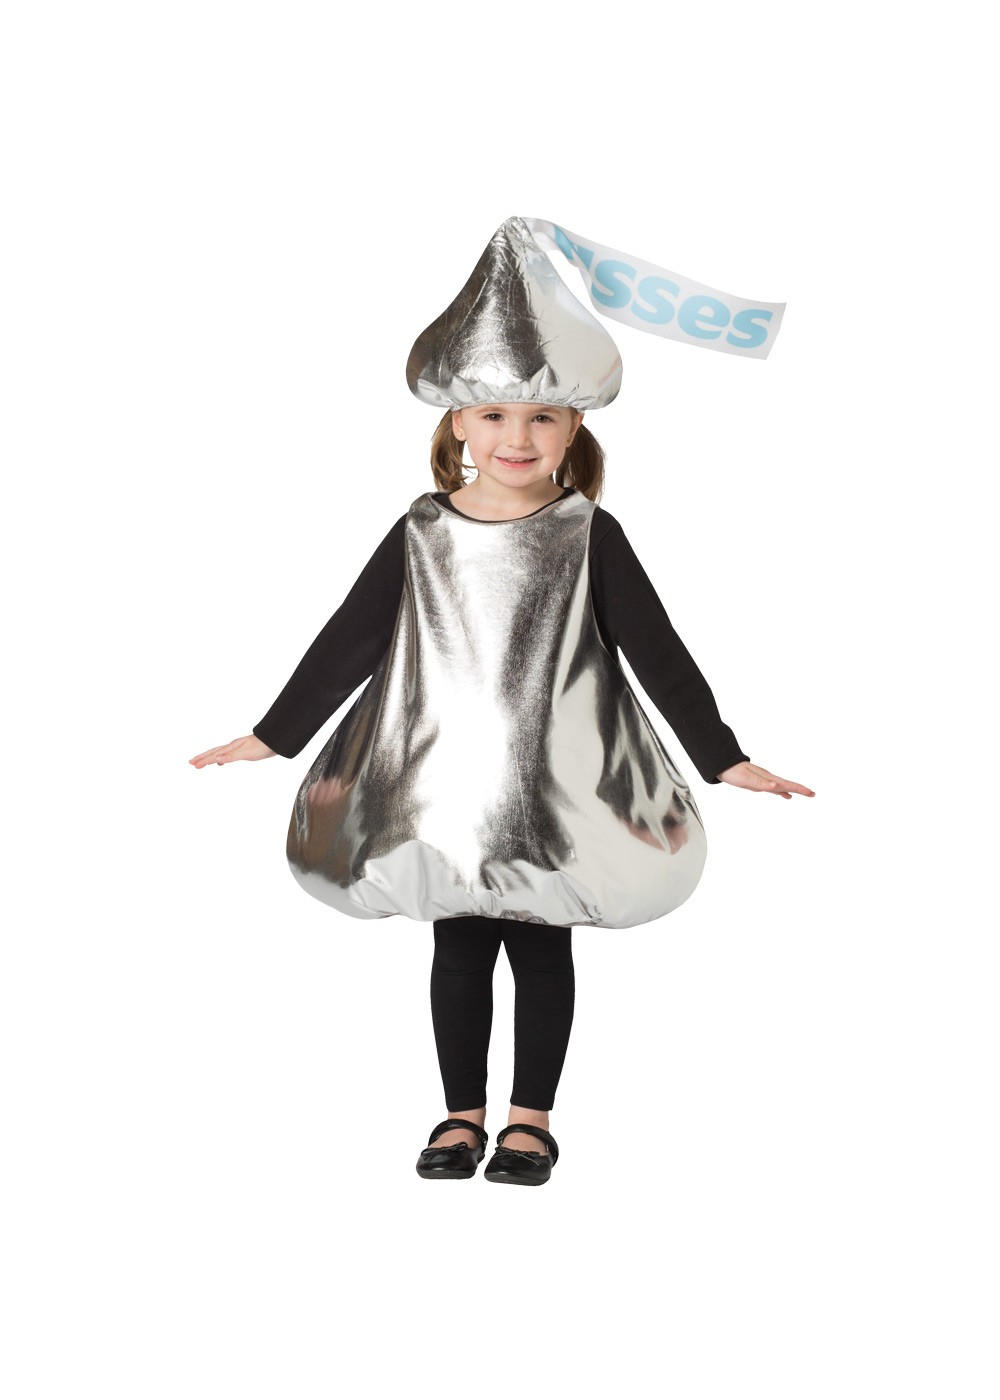 Hersheys Kiss Toddler Costume